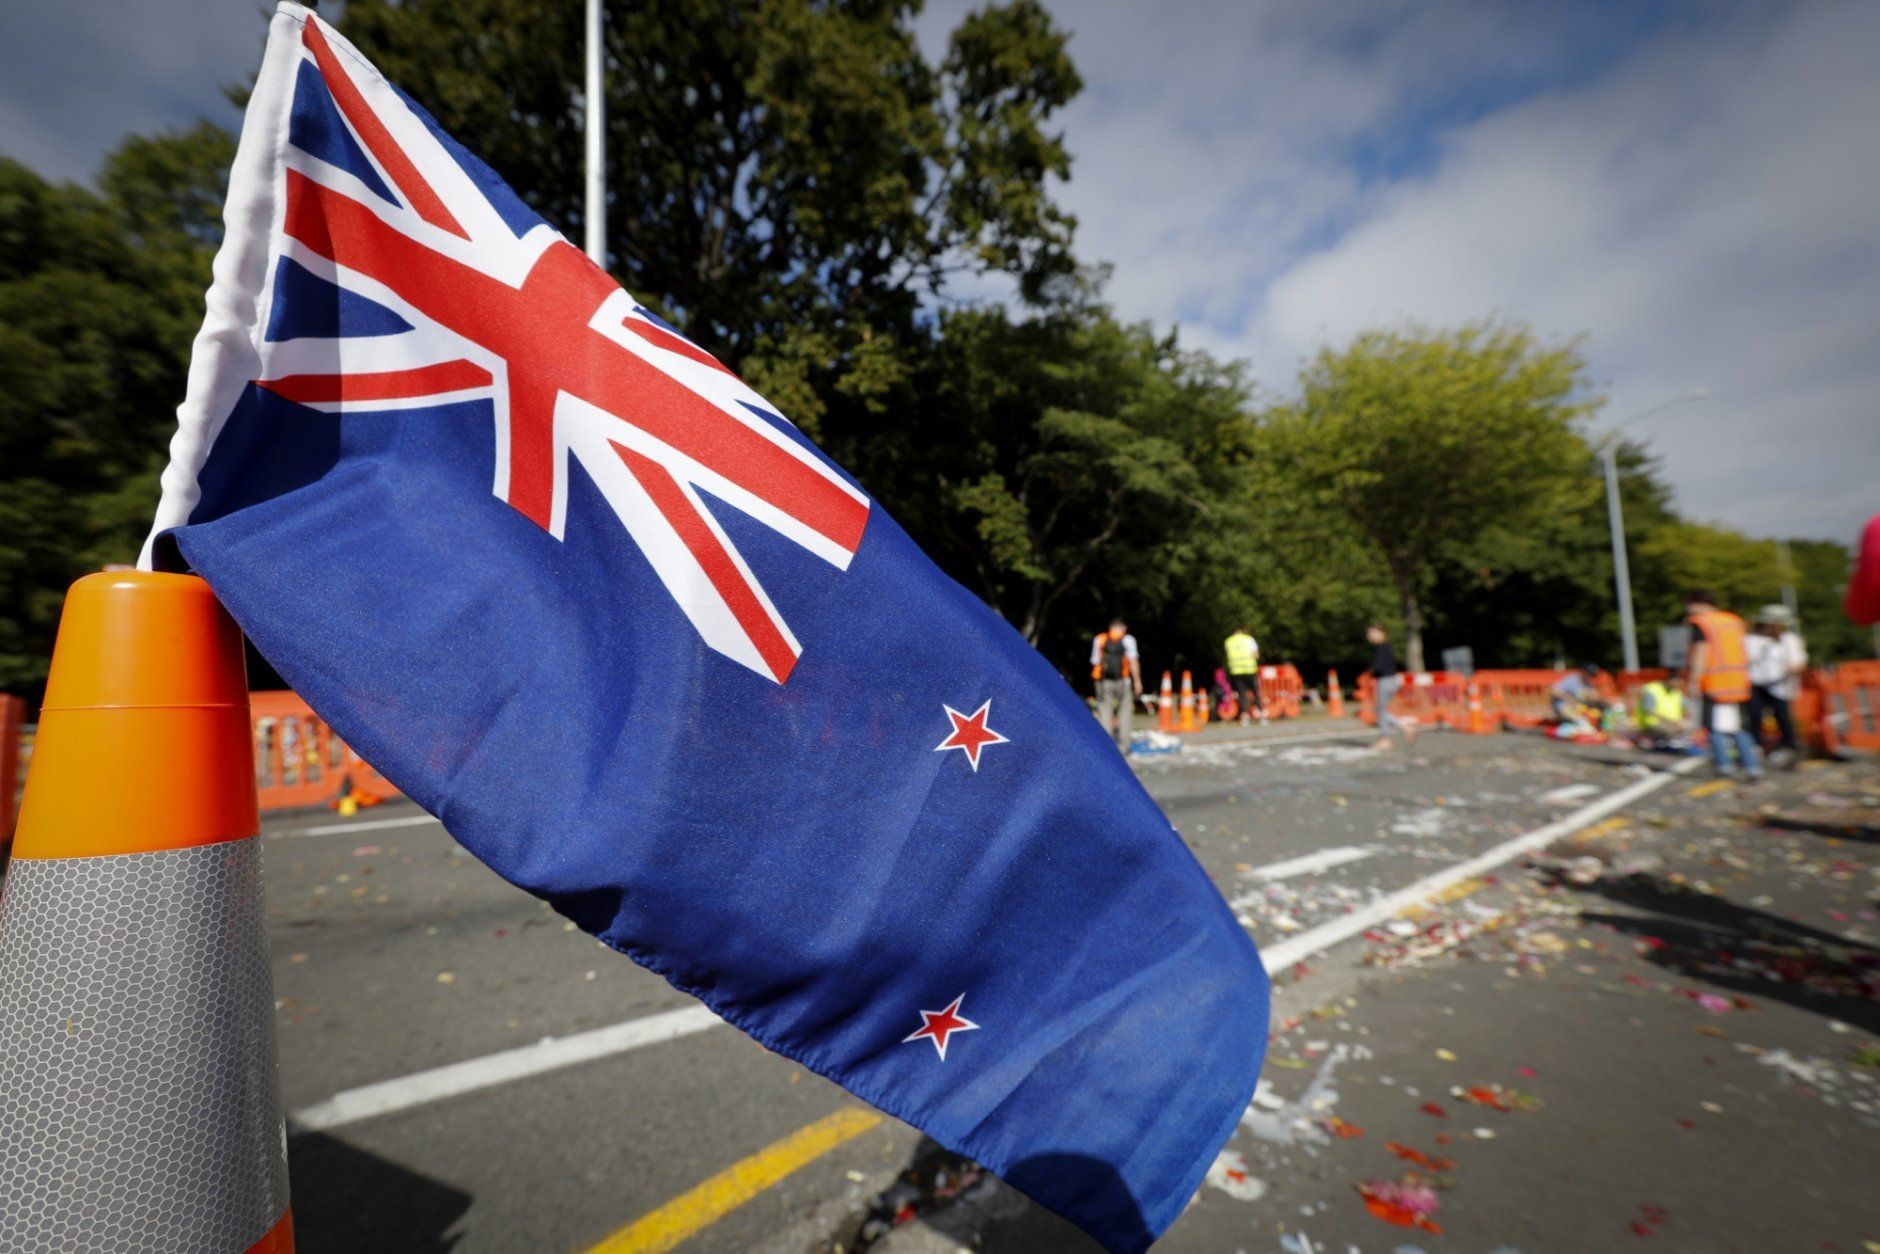 New Zealand's flag is on display as volunteers move flowers away near the Al Noor mosque in Christchurch, New Zealand, Thursday, March 21, 2019. Thousands of people were expected to come together for an emotional Friday prayer service led by the imam of one of the two New Zealand mosques where 50 worshippers were killed in a white supremacist attack on Friday March 15. (AP Photo/Vincent Thian)